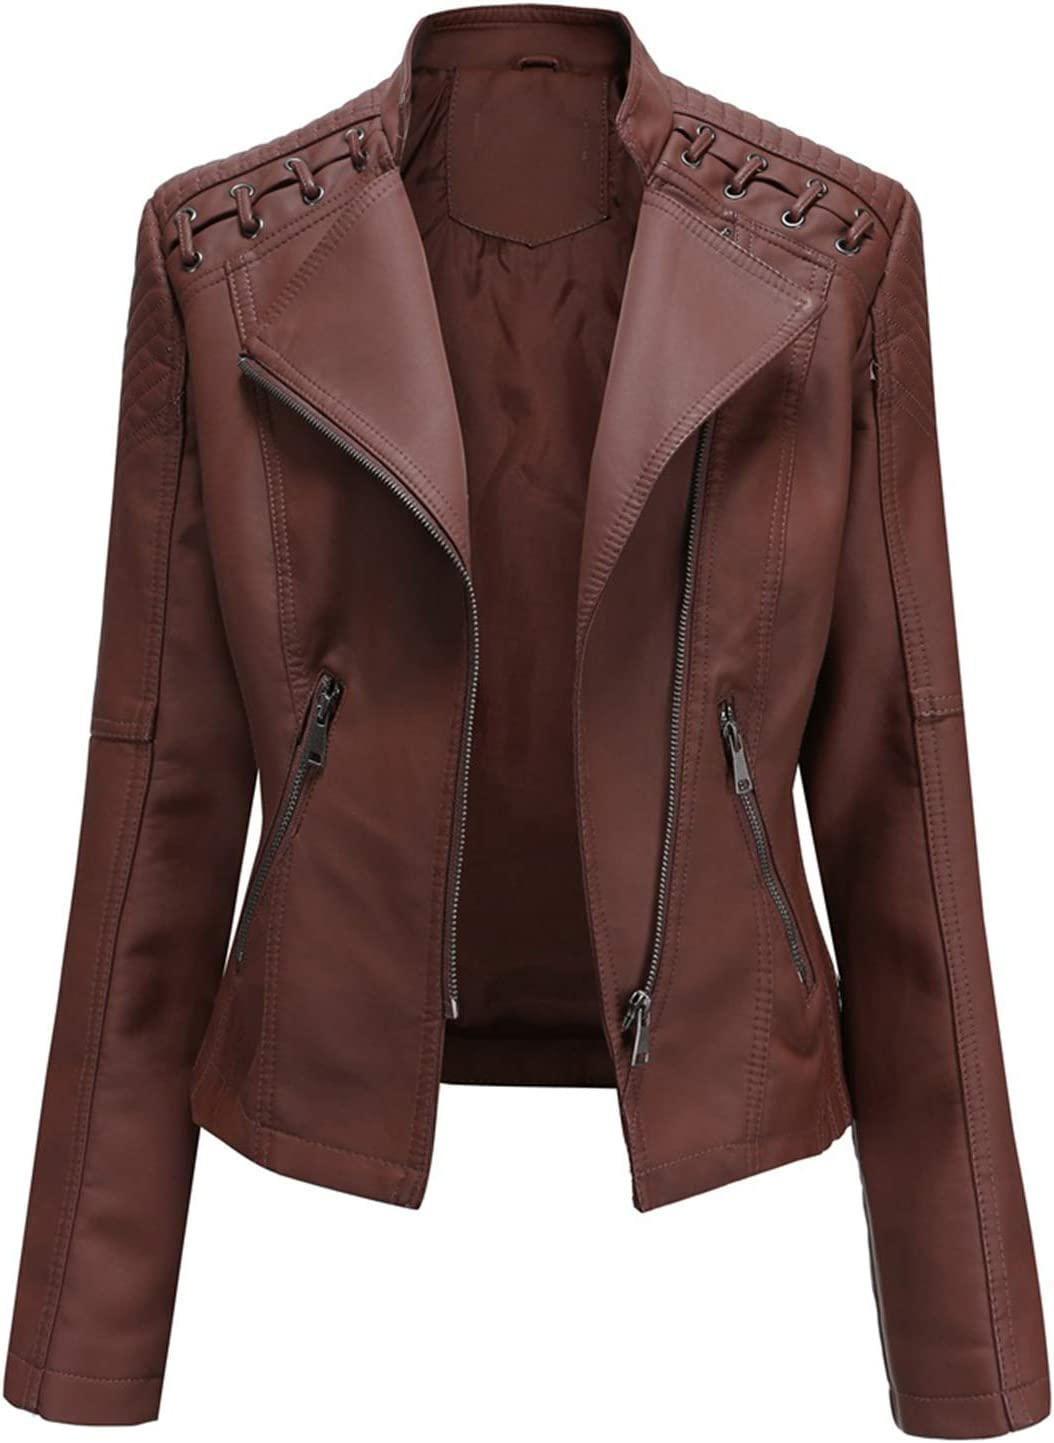 WEIXINMWP Fashion Leather Jacket Women Spring and Autumn Stand Collar Collar Motorcycle Rider Coat pu Jacket Coat high Street Jacket Street Clothing,Coffee,L